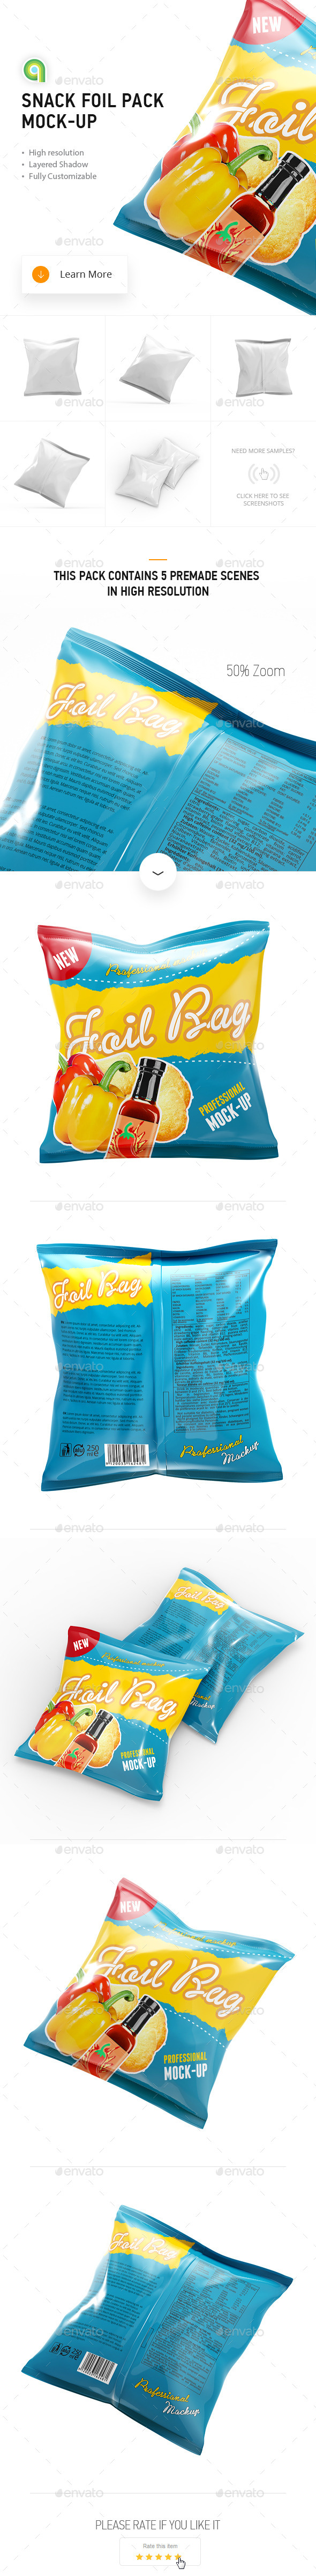 Snack Foil Pack Mock-up